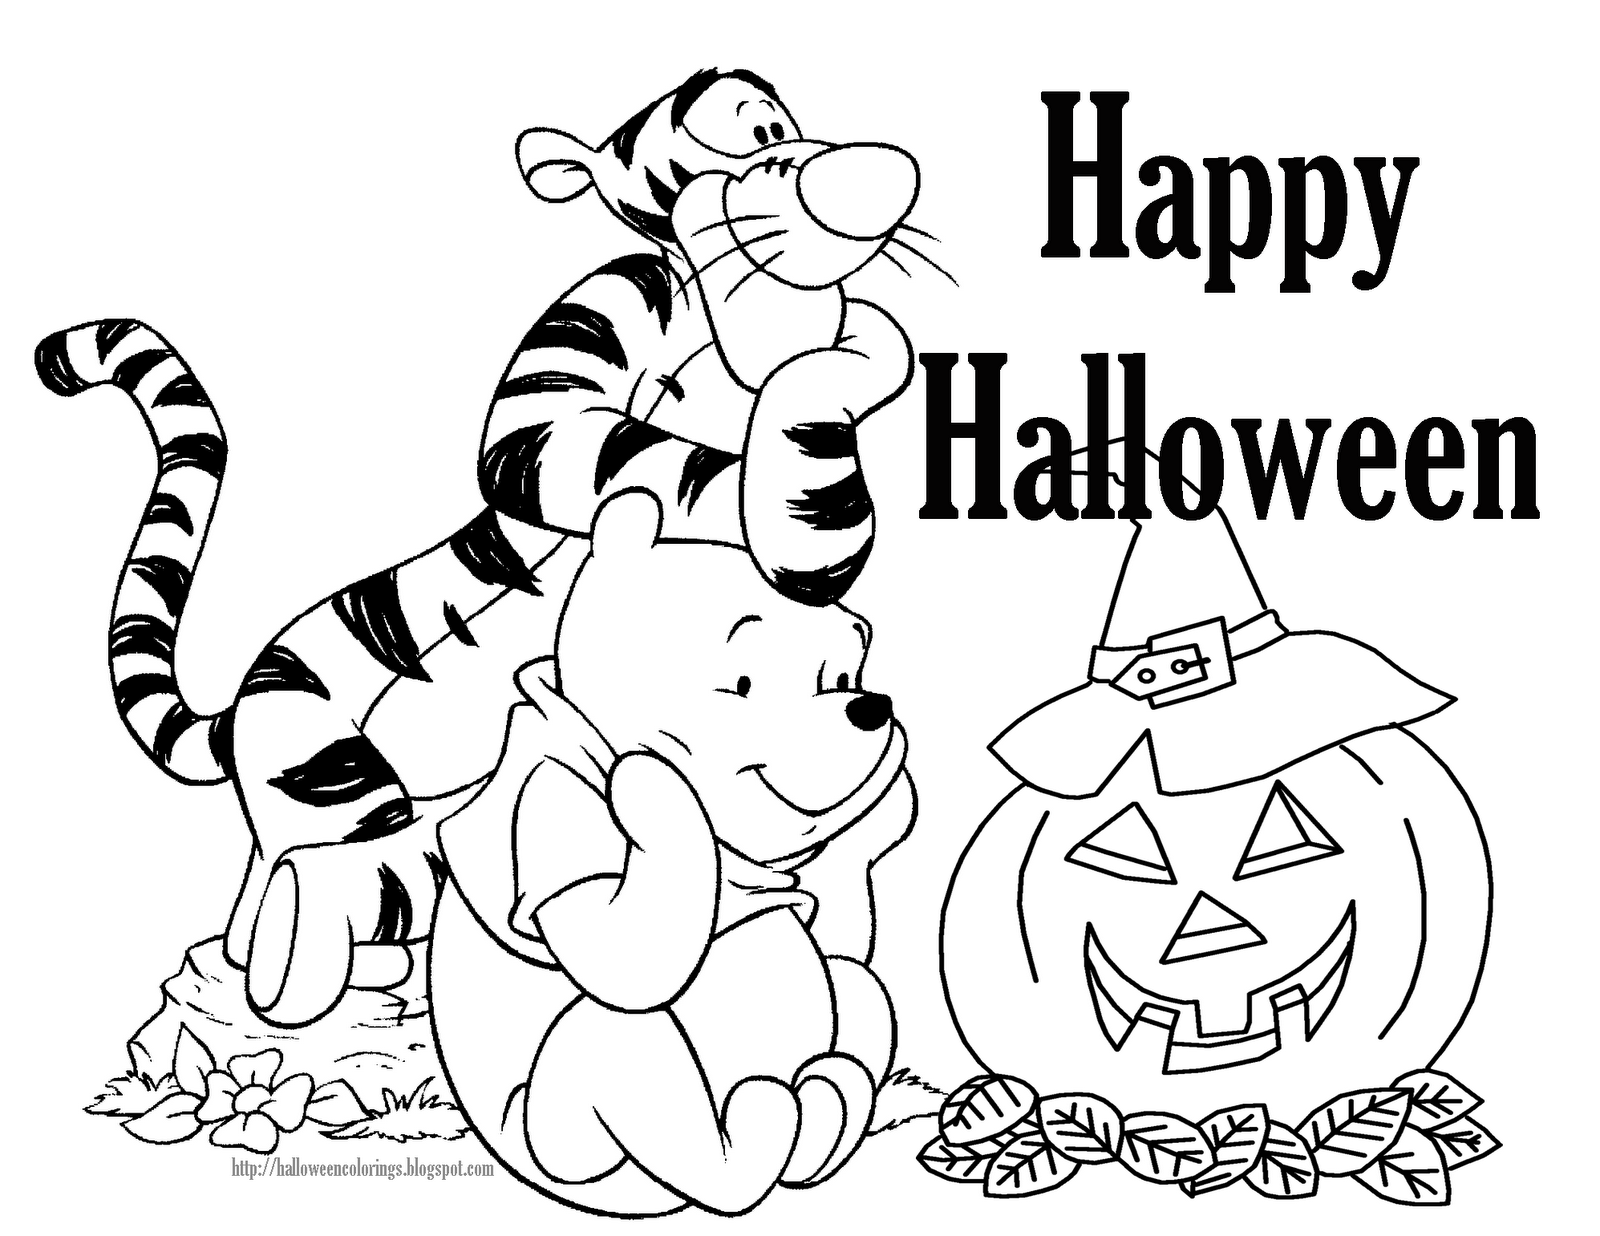 Disney Coloring Pages Halloween Coloring Pages Halloween Coloring Sheets Halloween Coloring Pages Printable